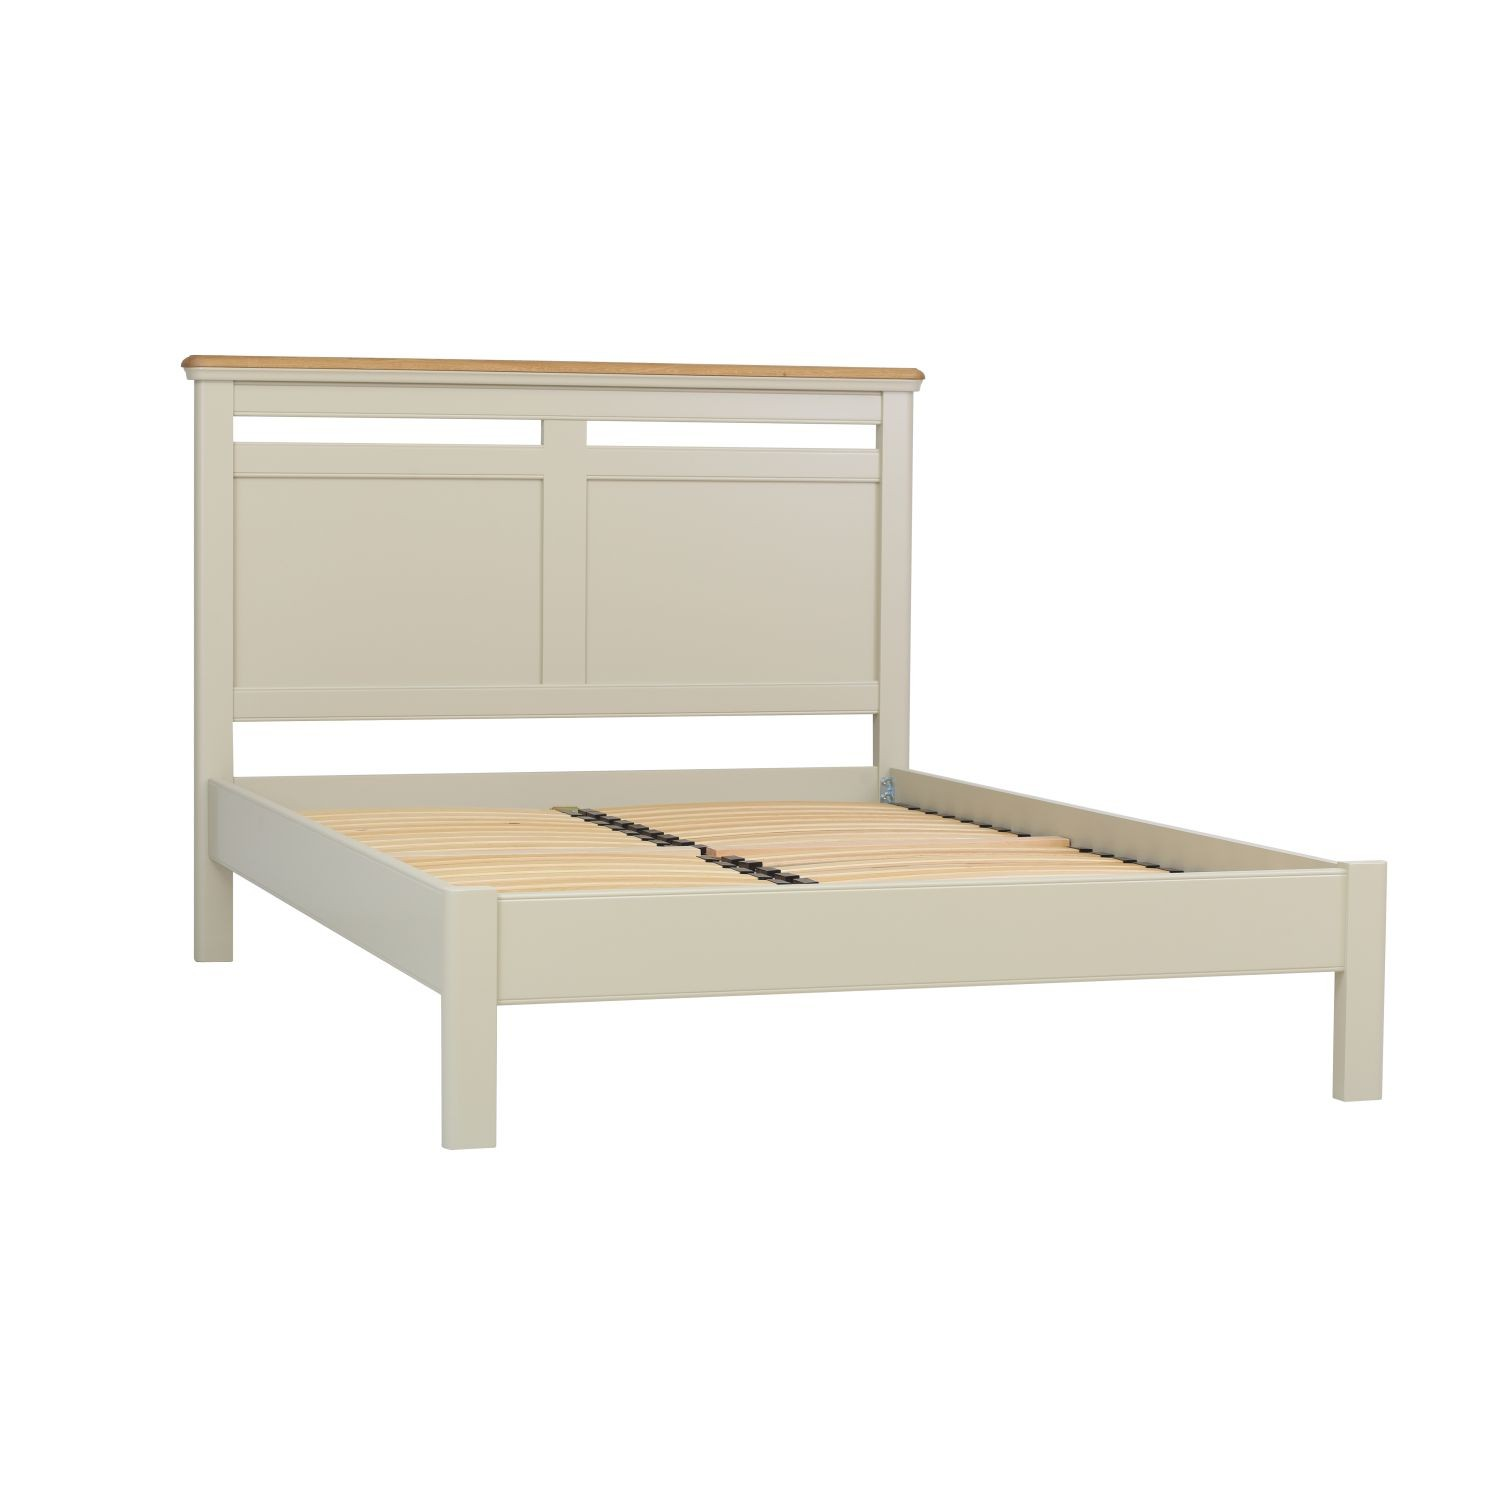 Picture of: Cherbourg Super King Bed Frame